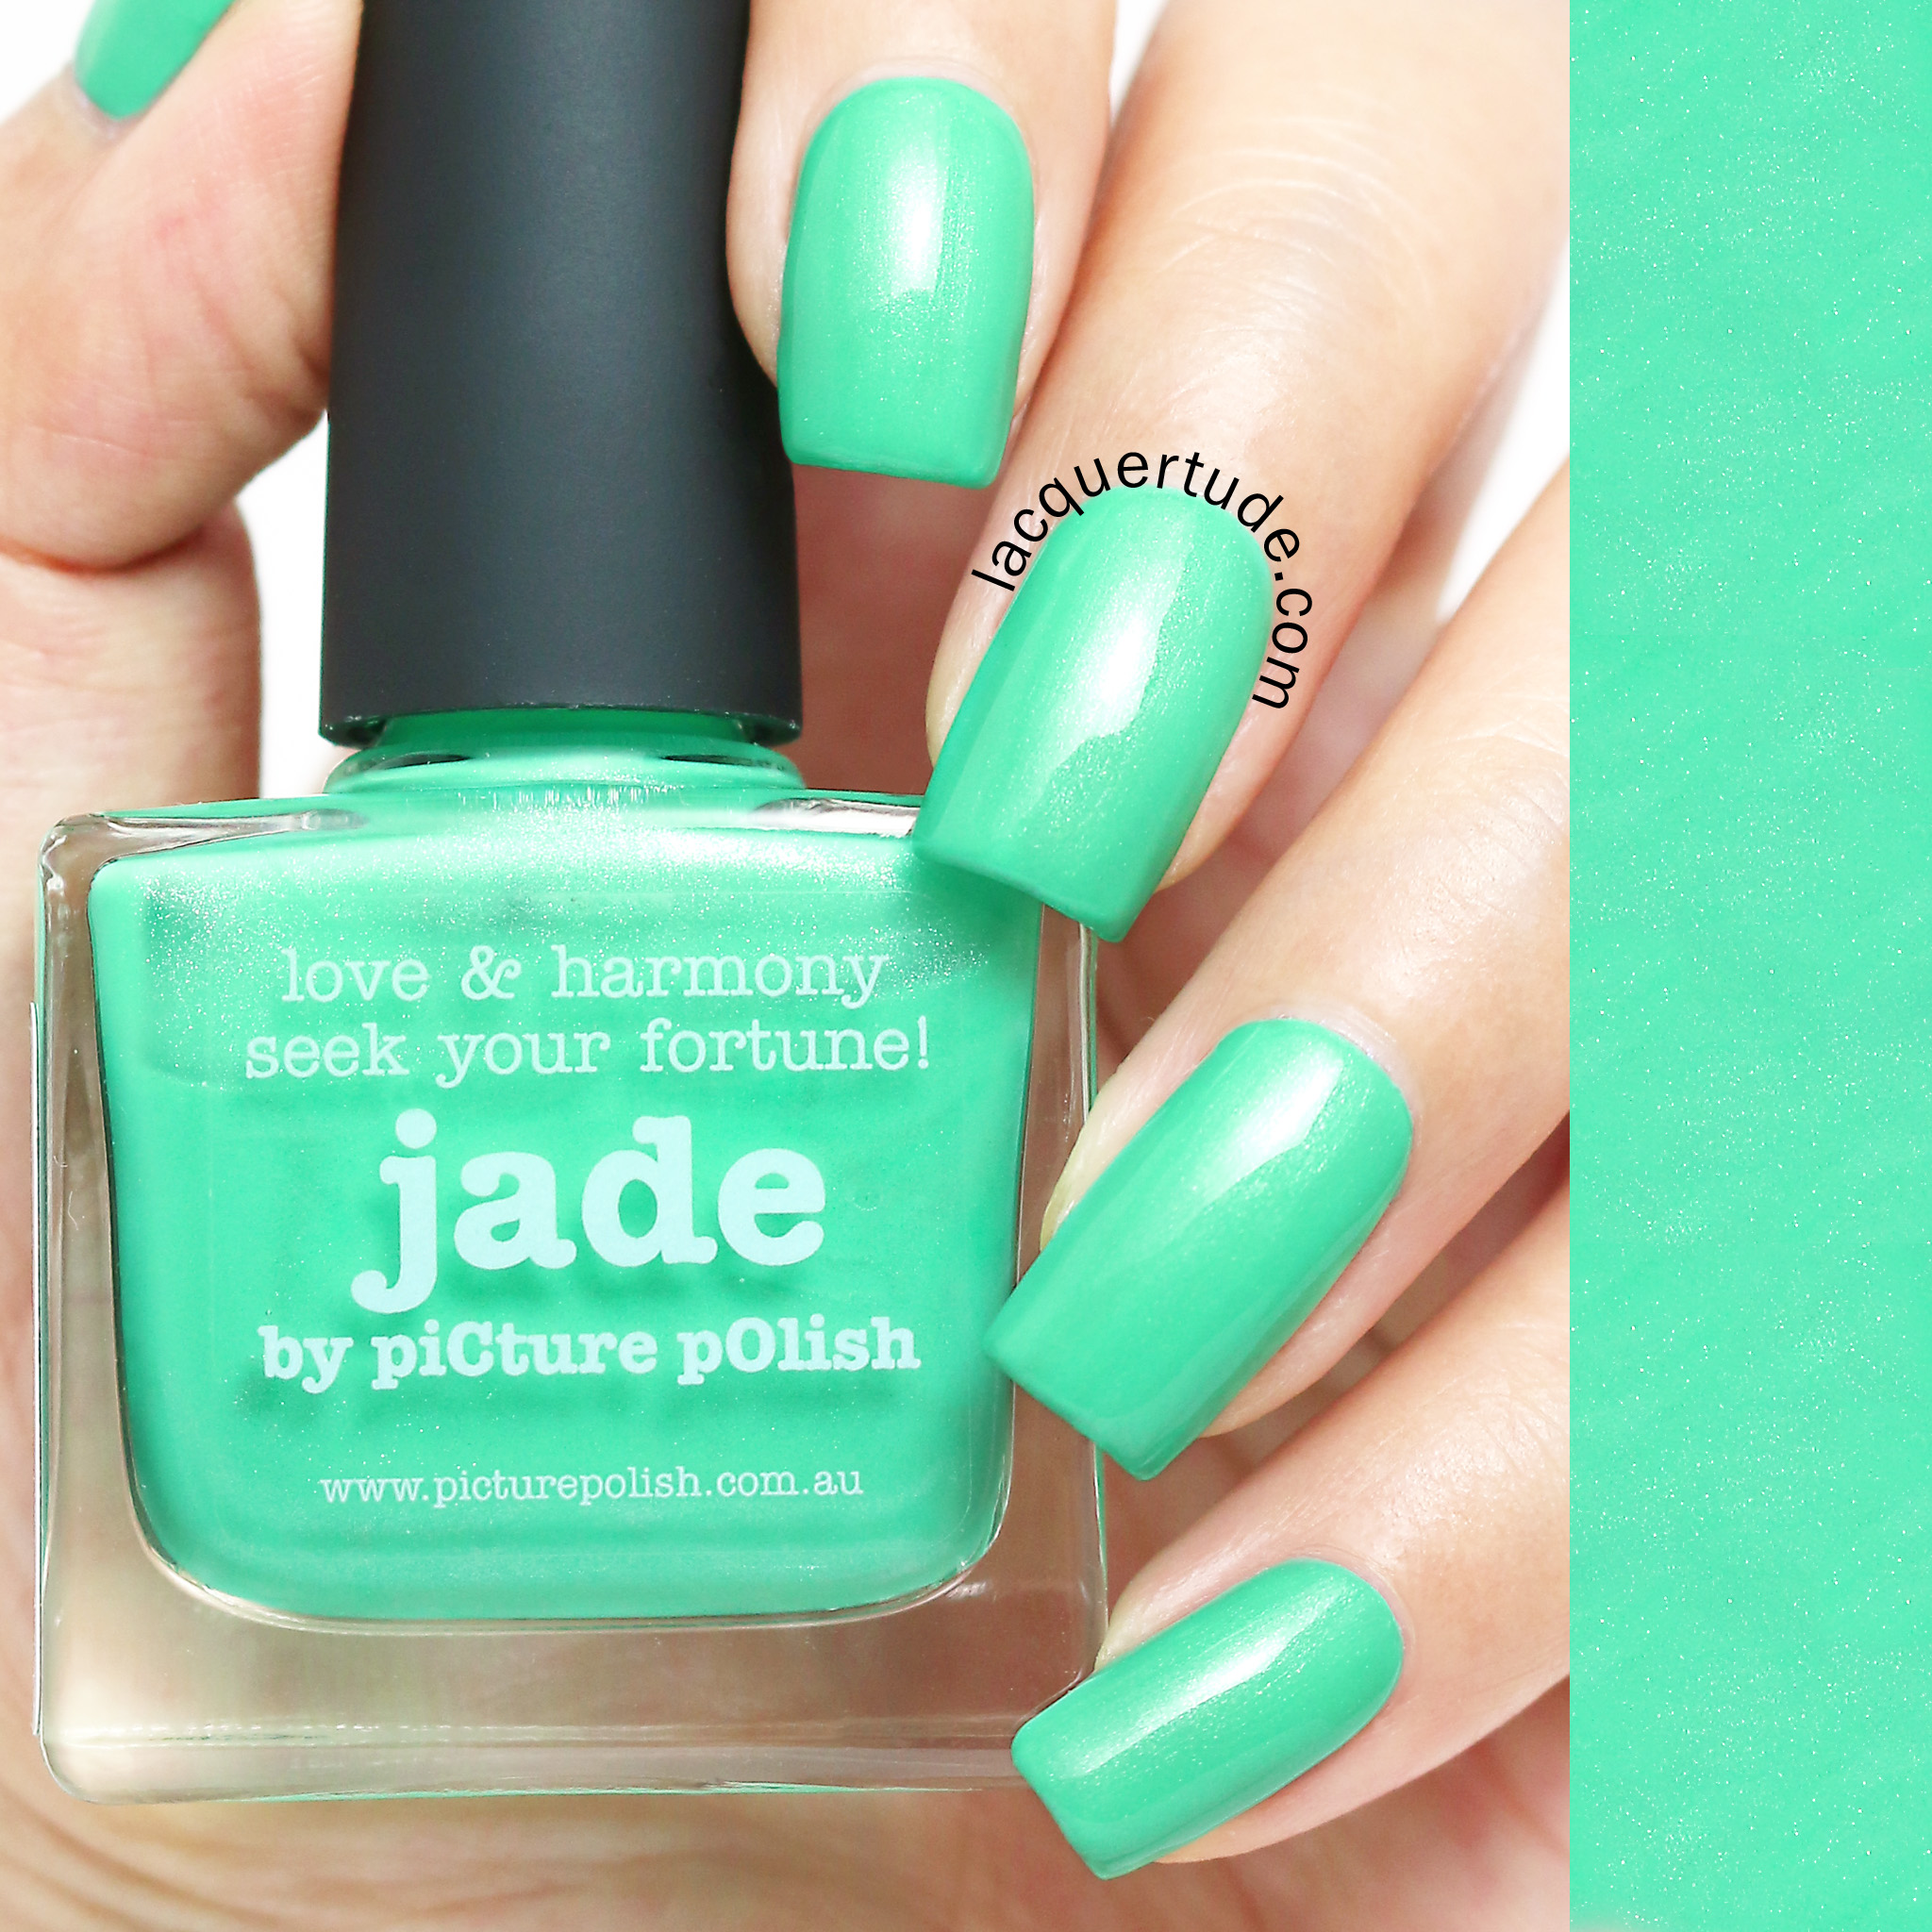 Lacquertude_Picture Polish Jade Swatch